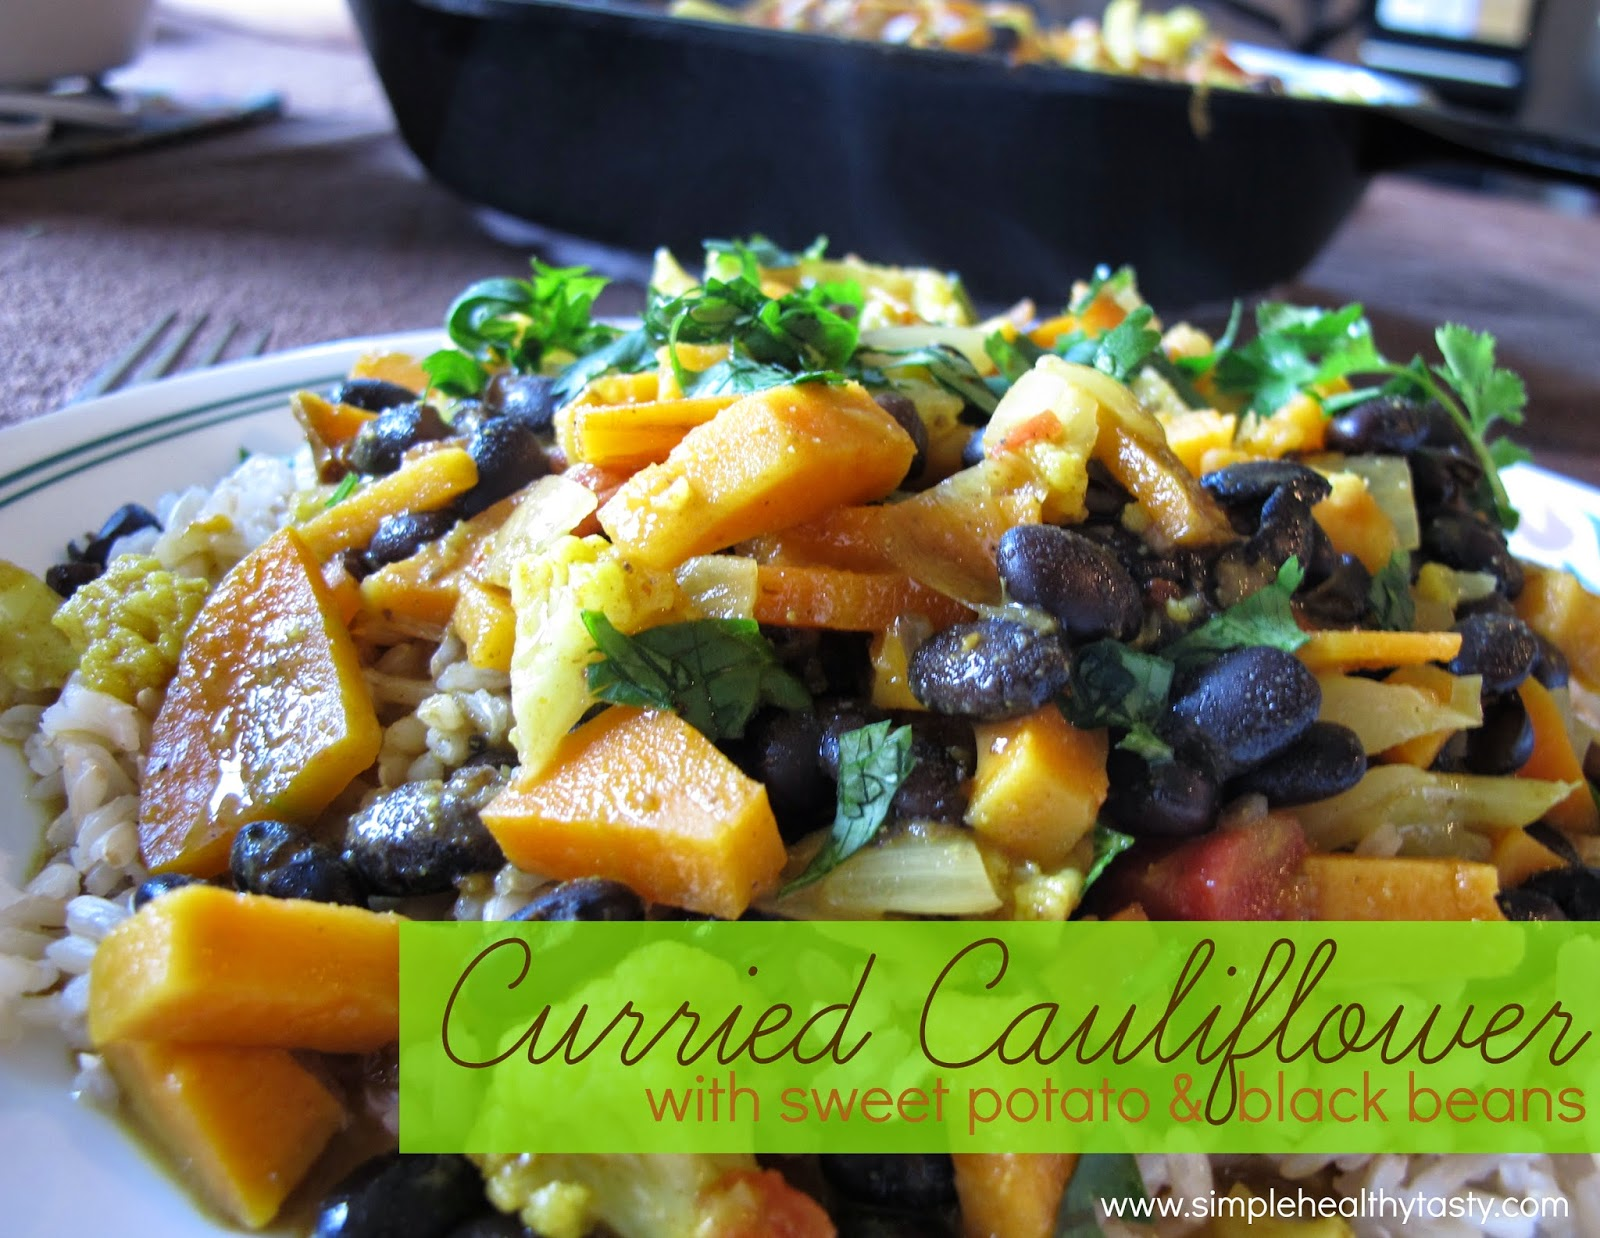 With Sweet Potato and Black Beans